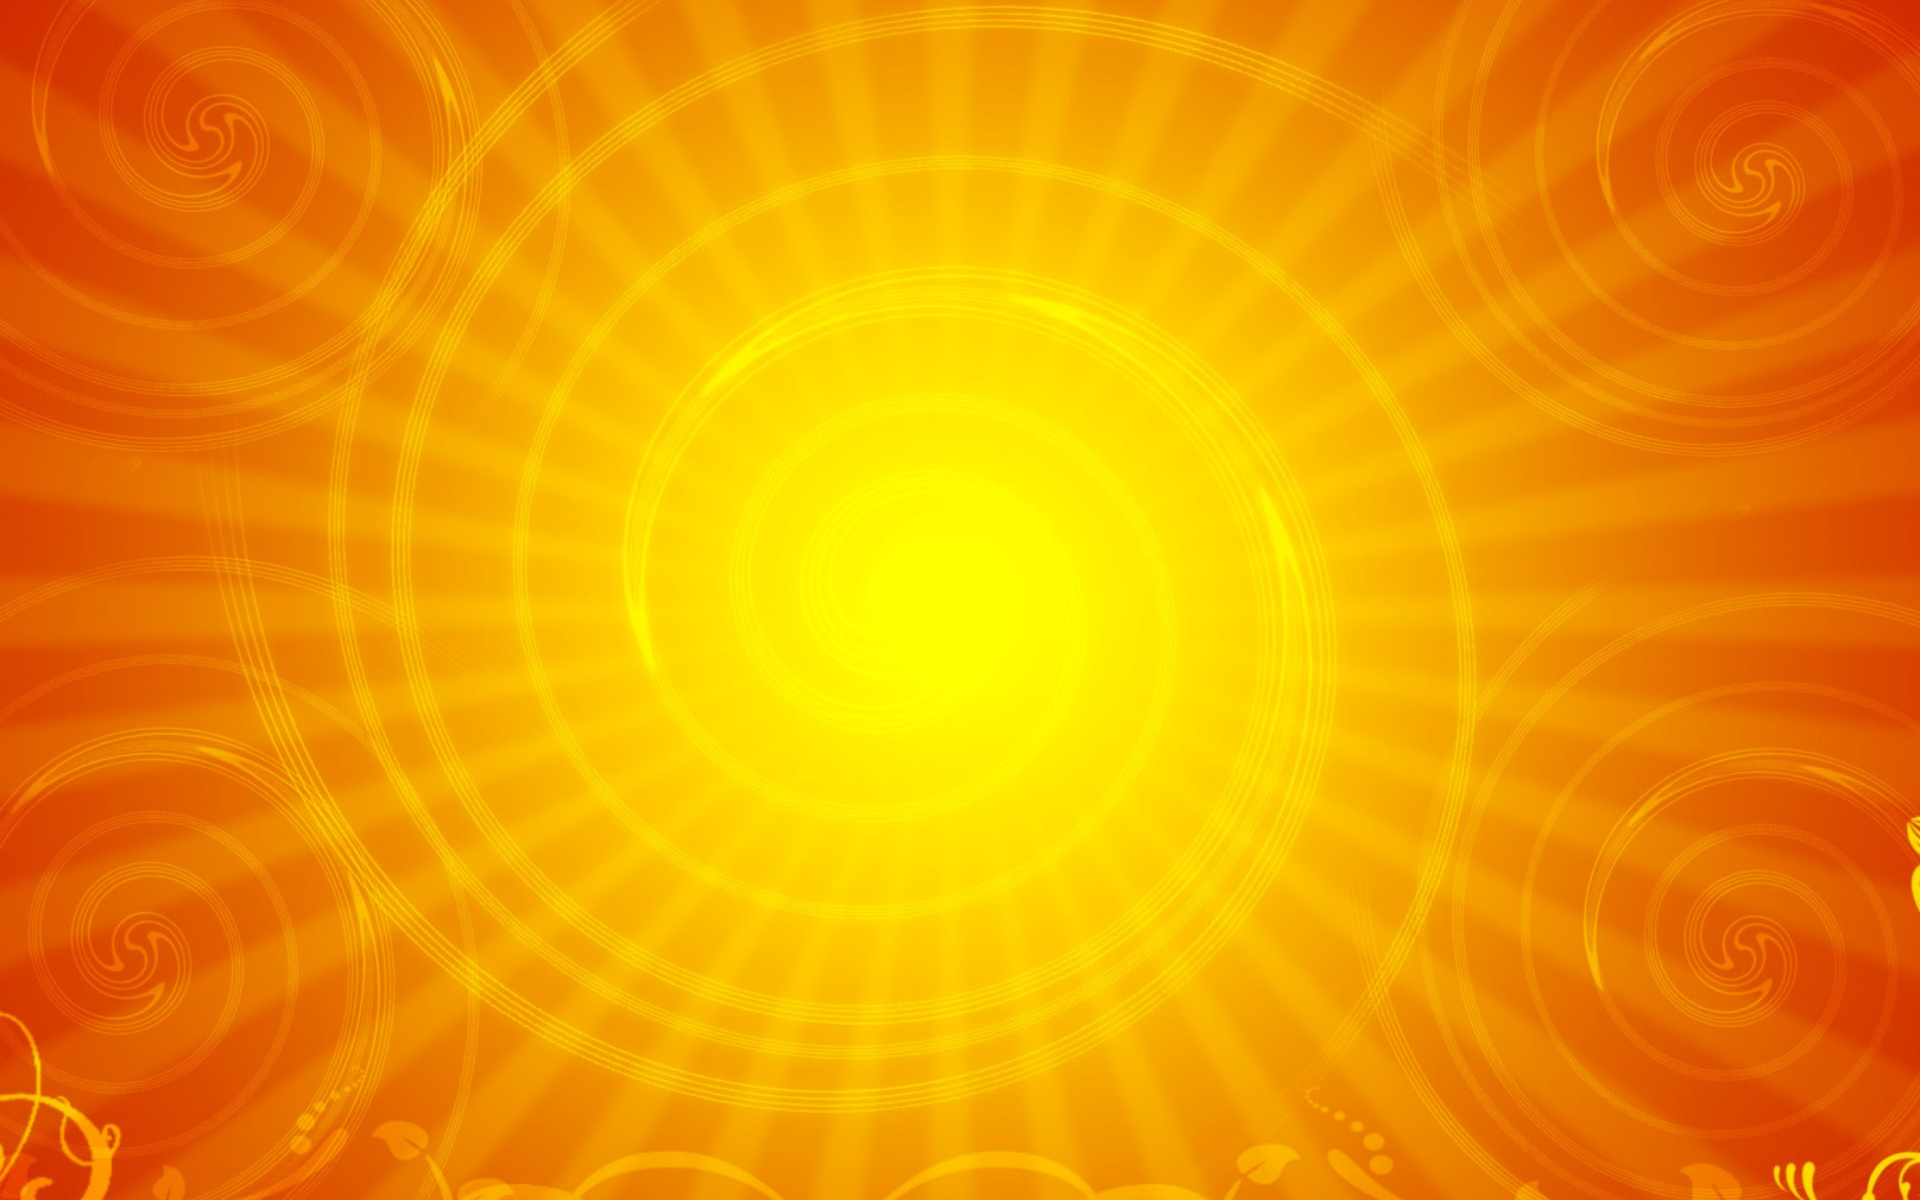 Sun Drawing Stock Images RoyaltyFree Images amp Vectors